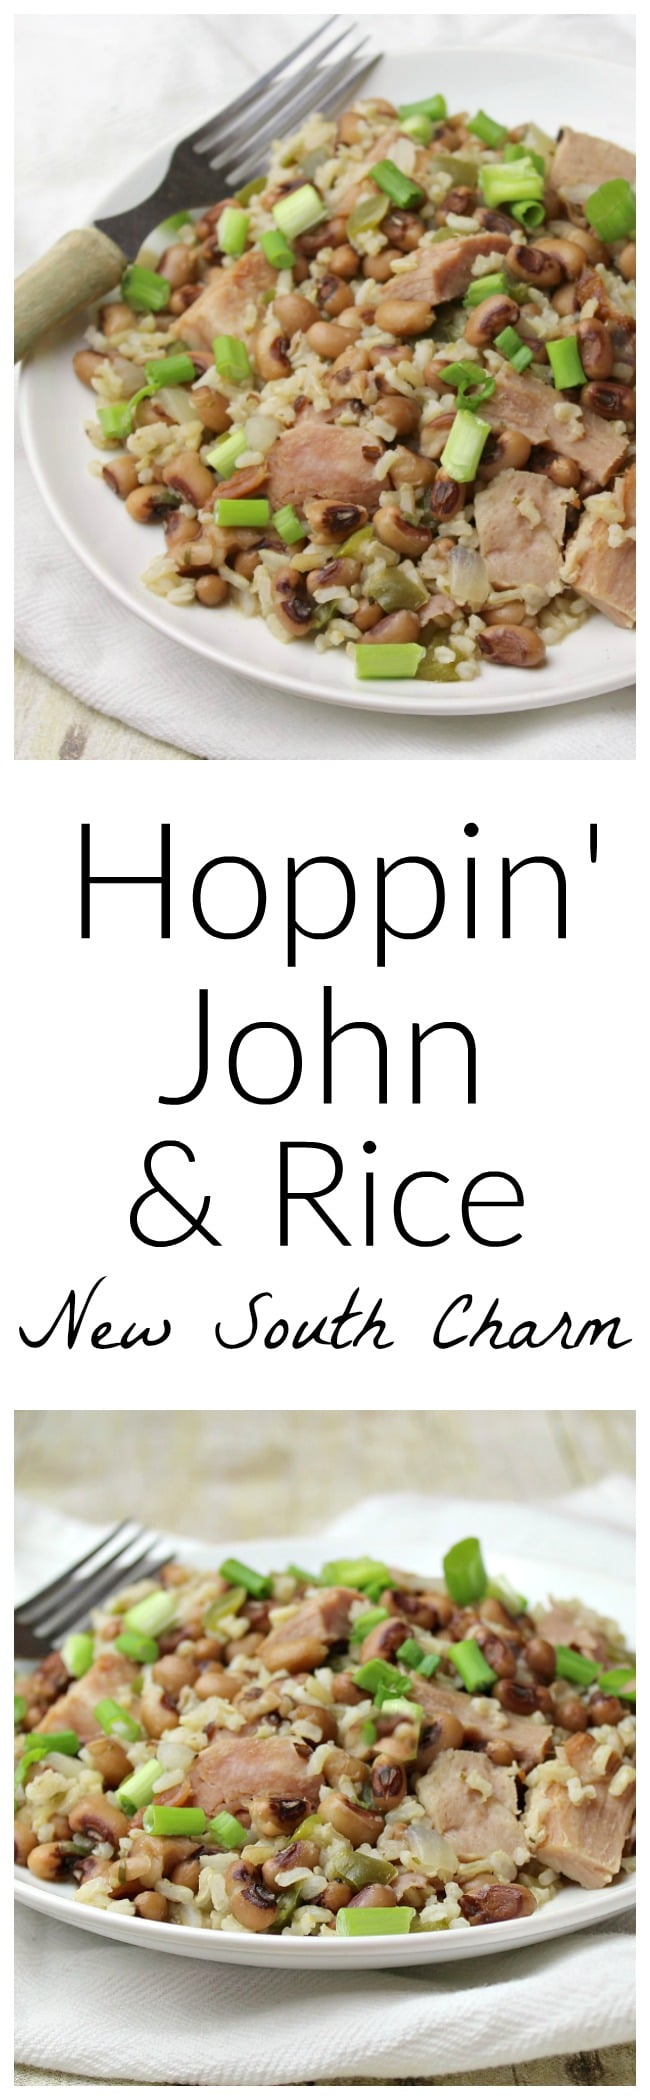 Hoppin' John and Rice is a traditional Southern dish with black eyed peas that is often served on New Year's Day.